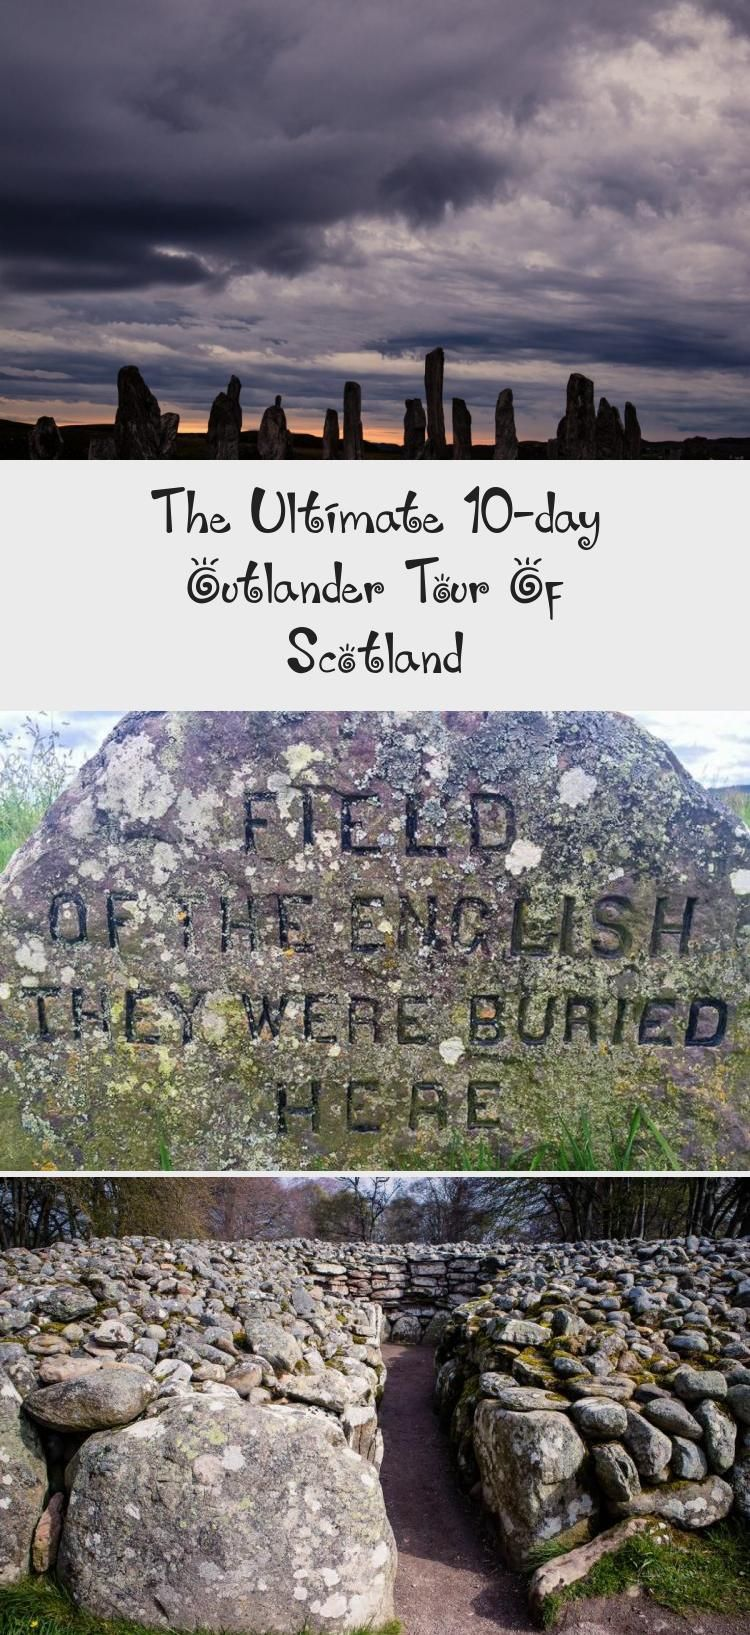 Want to relive Outlander in real life Then dont miss this epic 10day Outlander themed tour of Scotland Heres what to expect and how to go